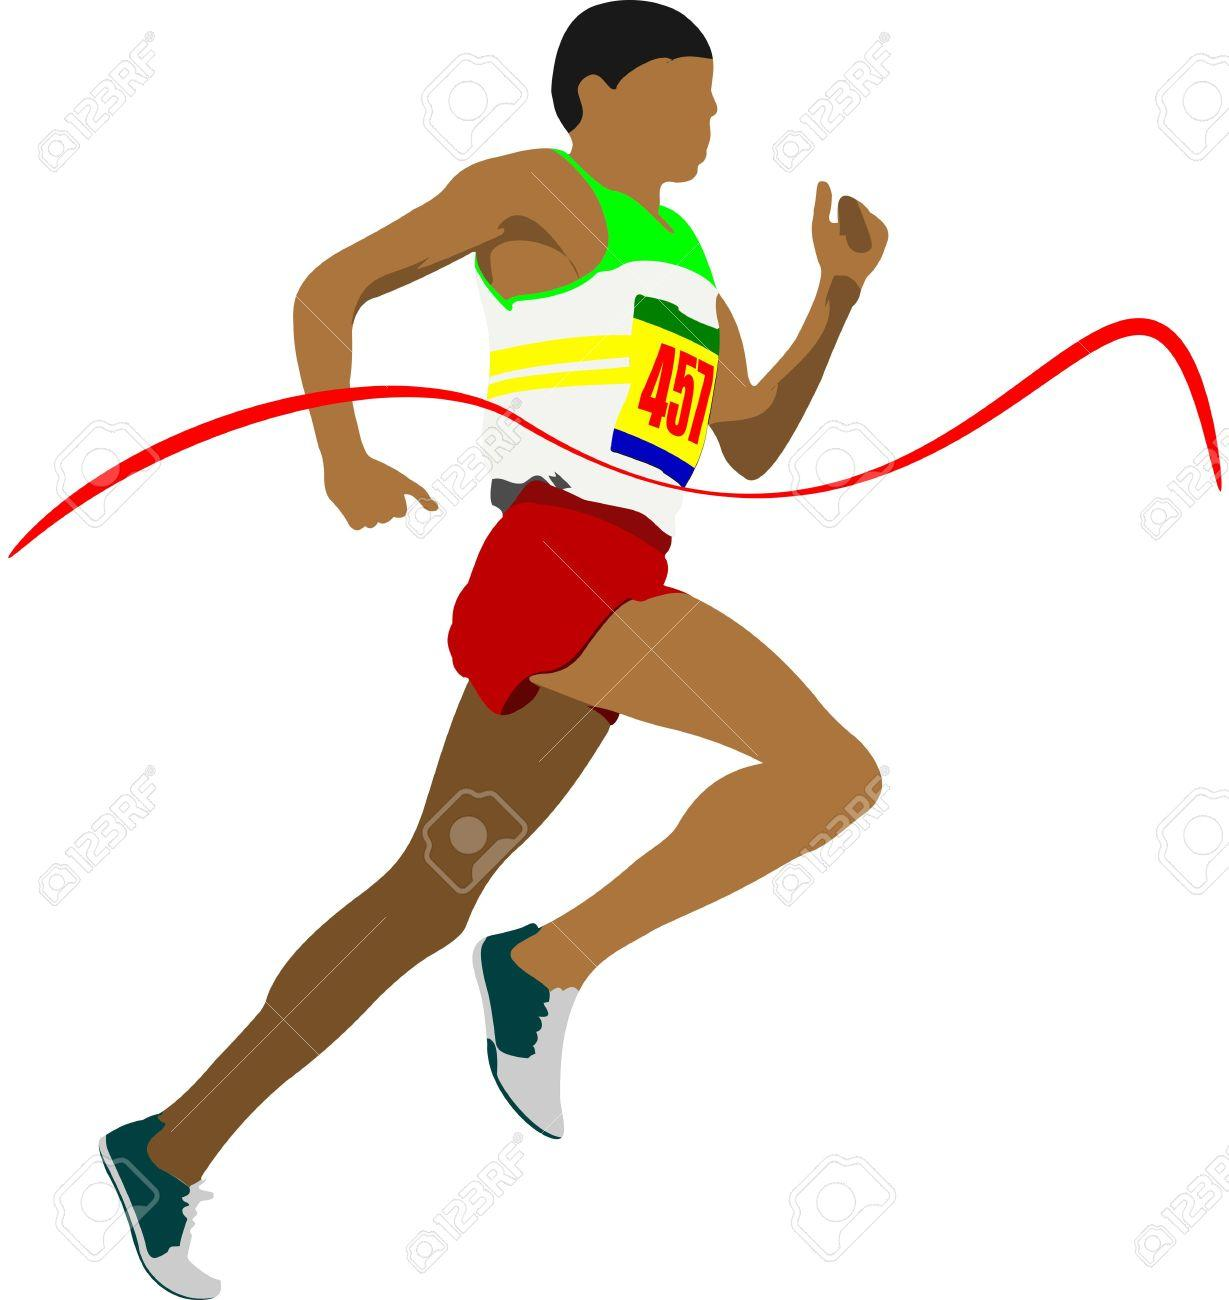 Athlete clipart 100m.  collection of athletics